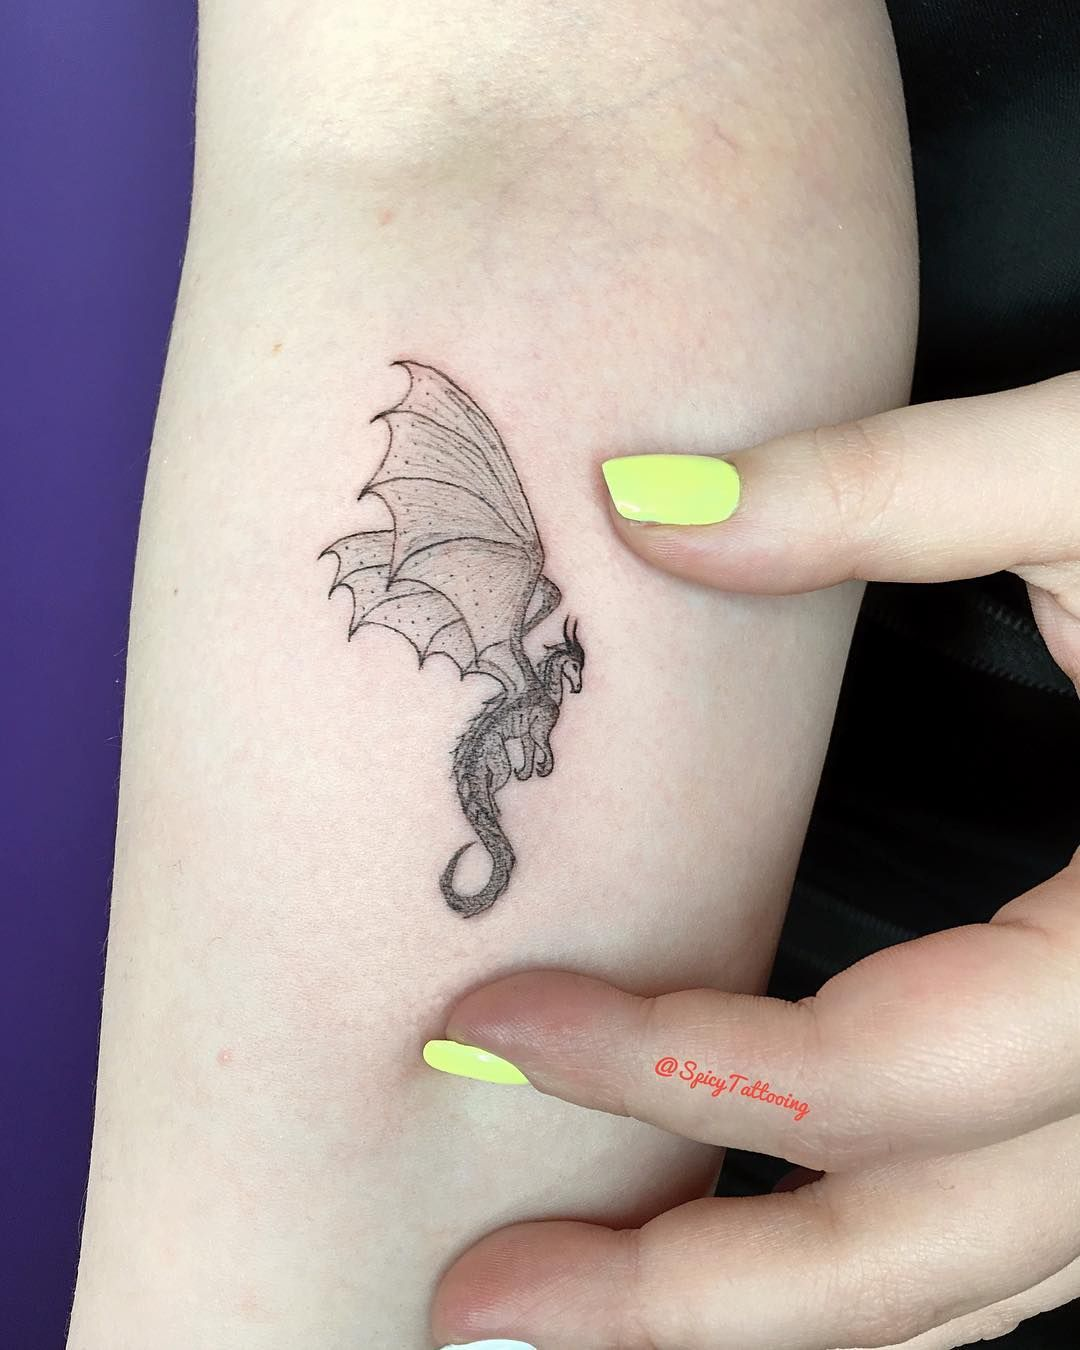 Photo of Tiny tattoo of Dragon from Game of Thrones